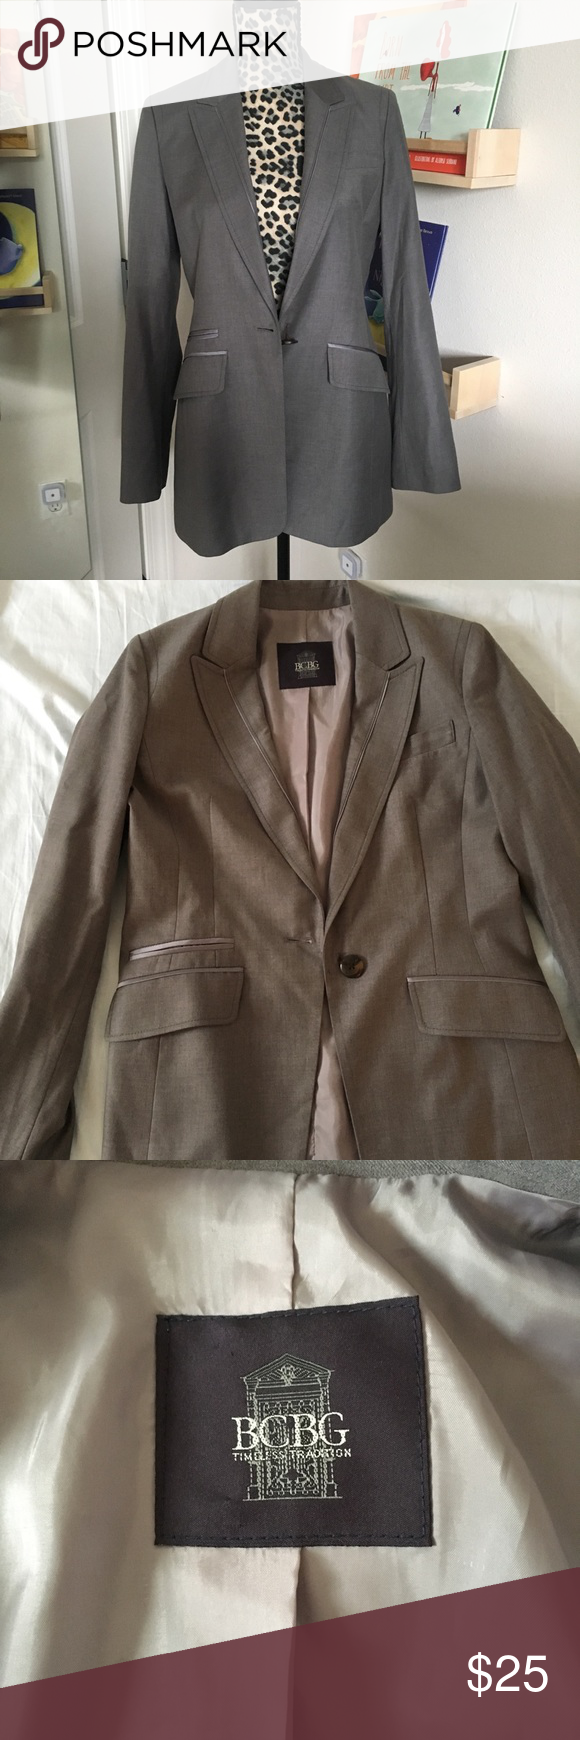 c9e3db8febaaf BCBG slim tuxedo style blazer Tuxedo style blazer Very slimming Nice gray  color It s from Korea so the sizing is weird but it s like a size 2 or 4 I  can get ...